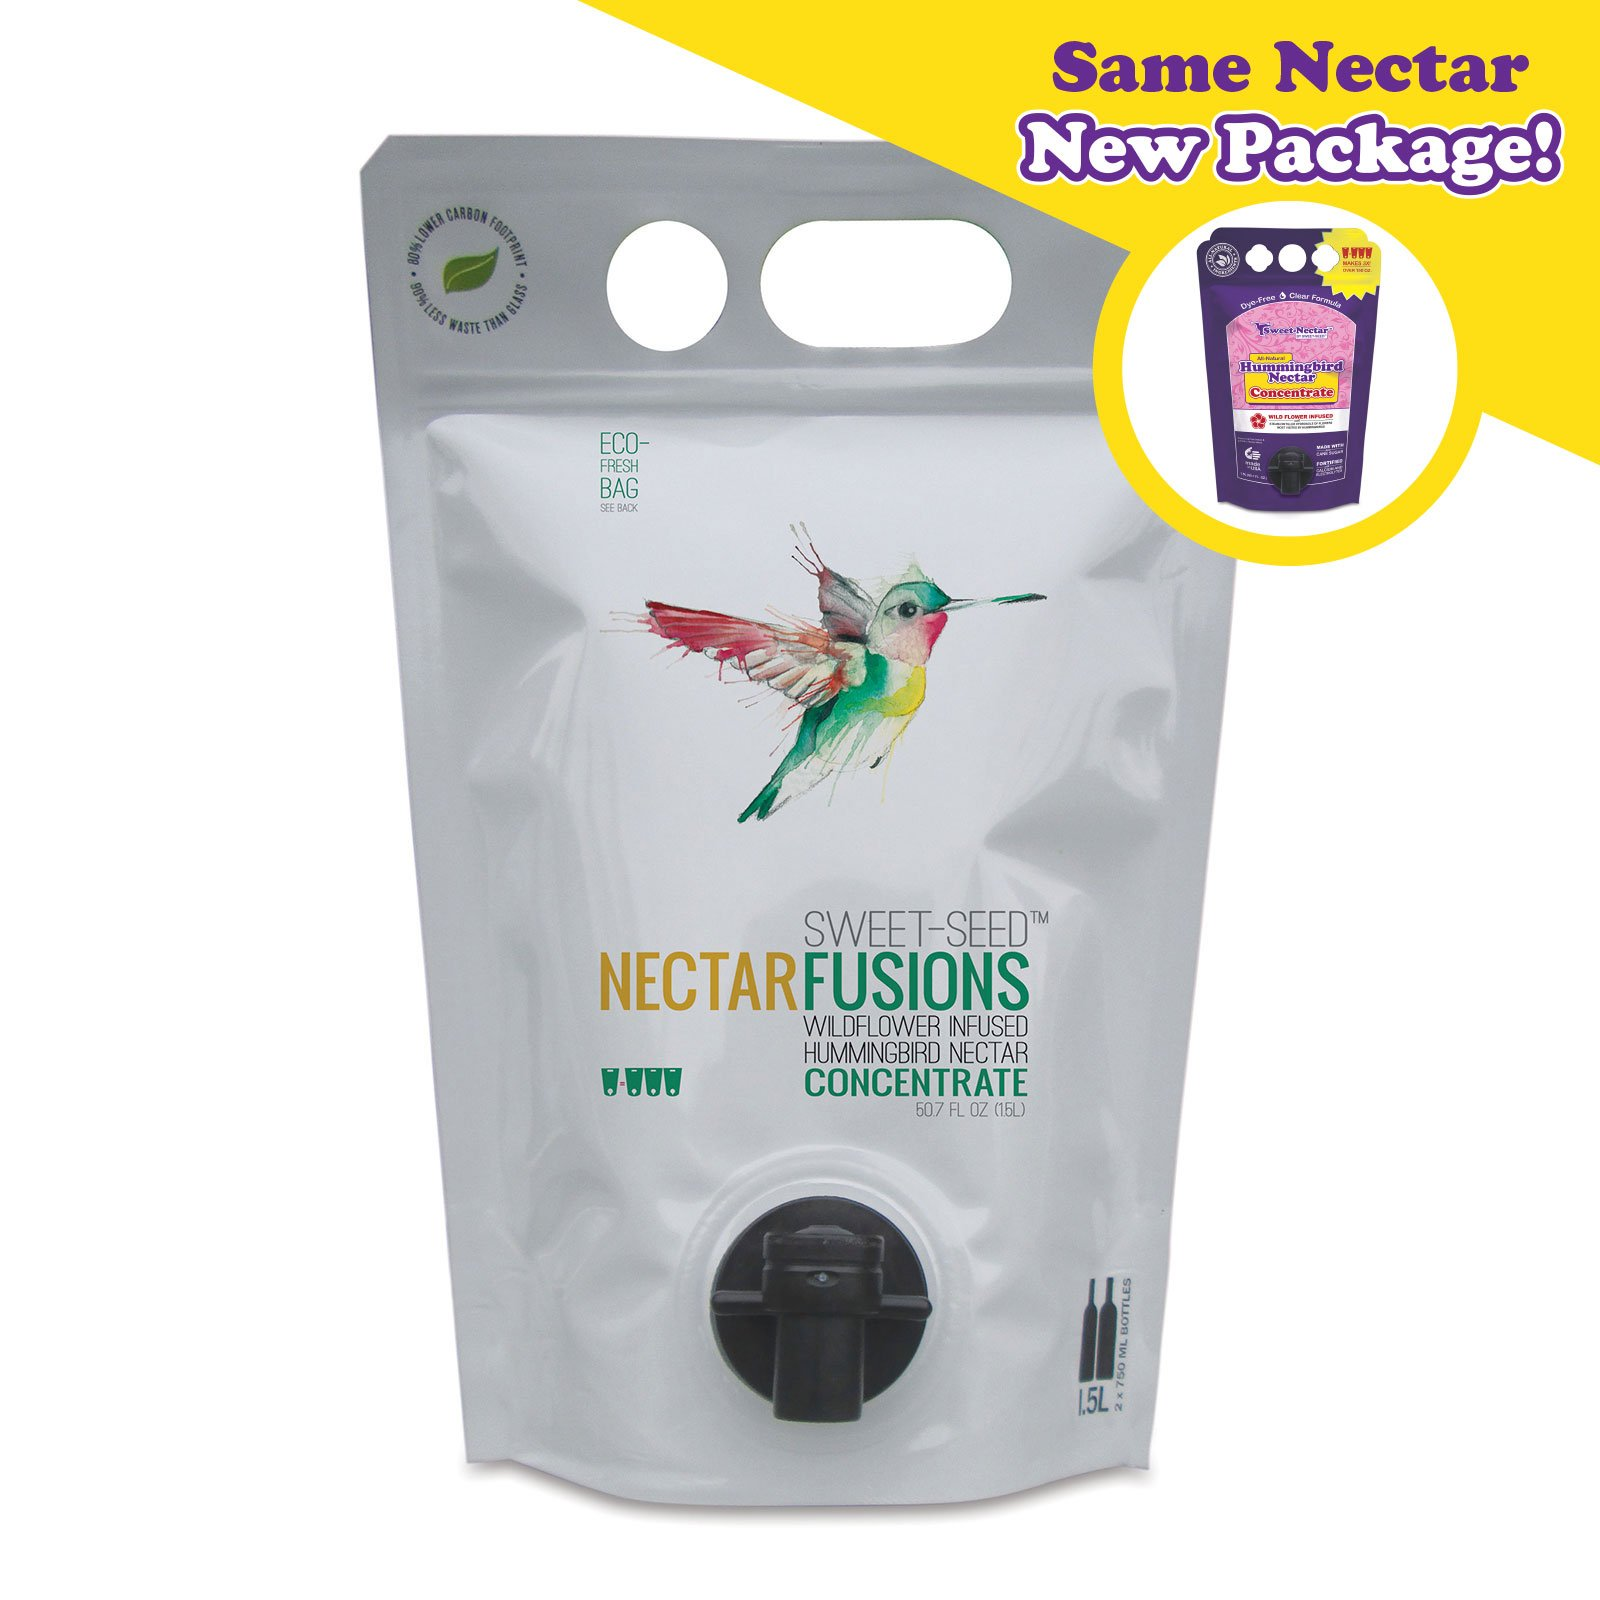 Sweet-Seed, LLC Nectar Fusions Hummingbird Food: All-natural & Dye Free, Wildflower Infused Hummingbird Nectar Concentrate (50 oz./Makes 150 oz.)